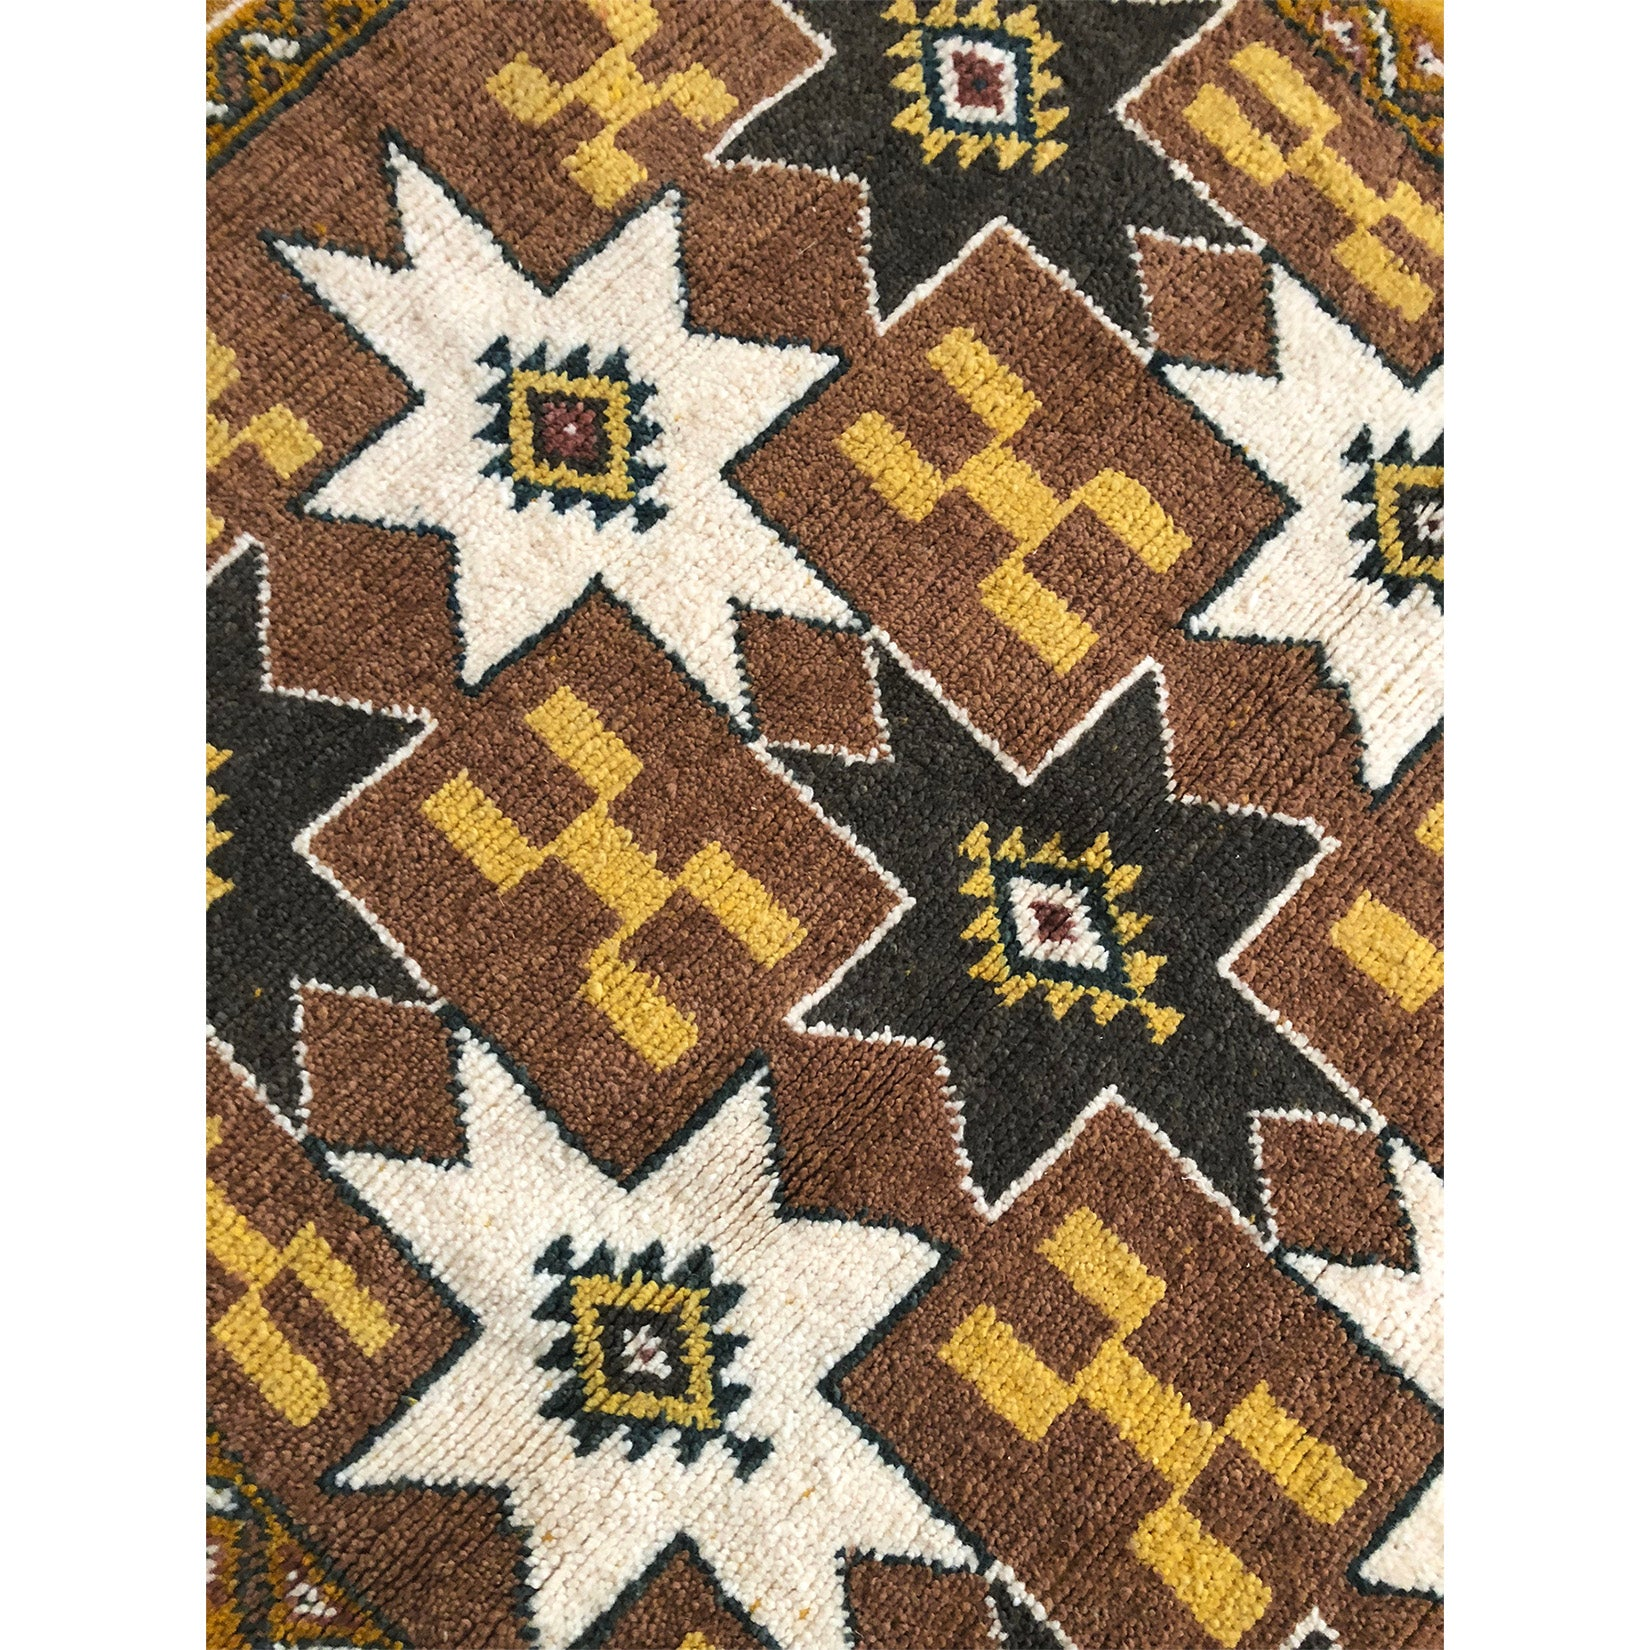 Authentic Moroccan diamond rug - Kantara | Moroccan Rugs